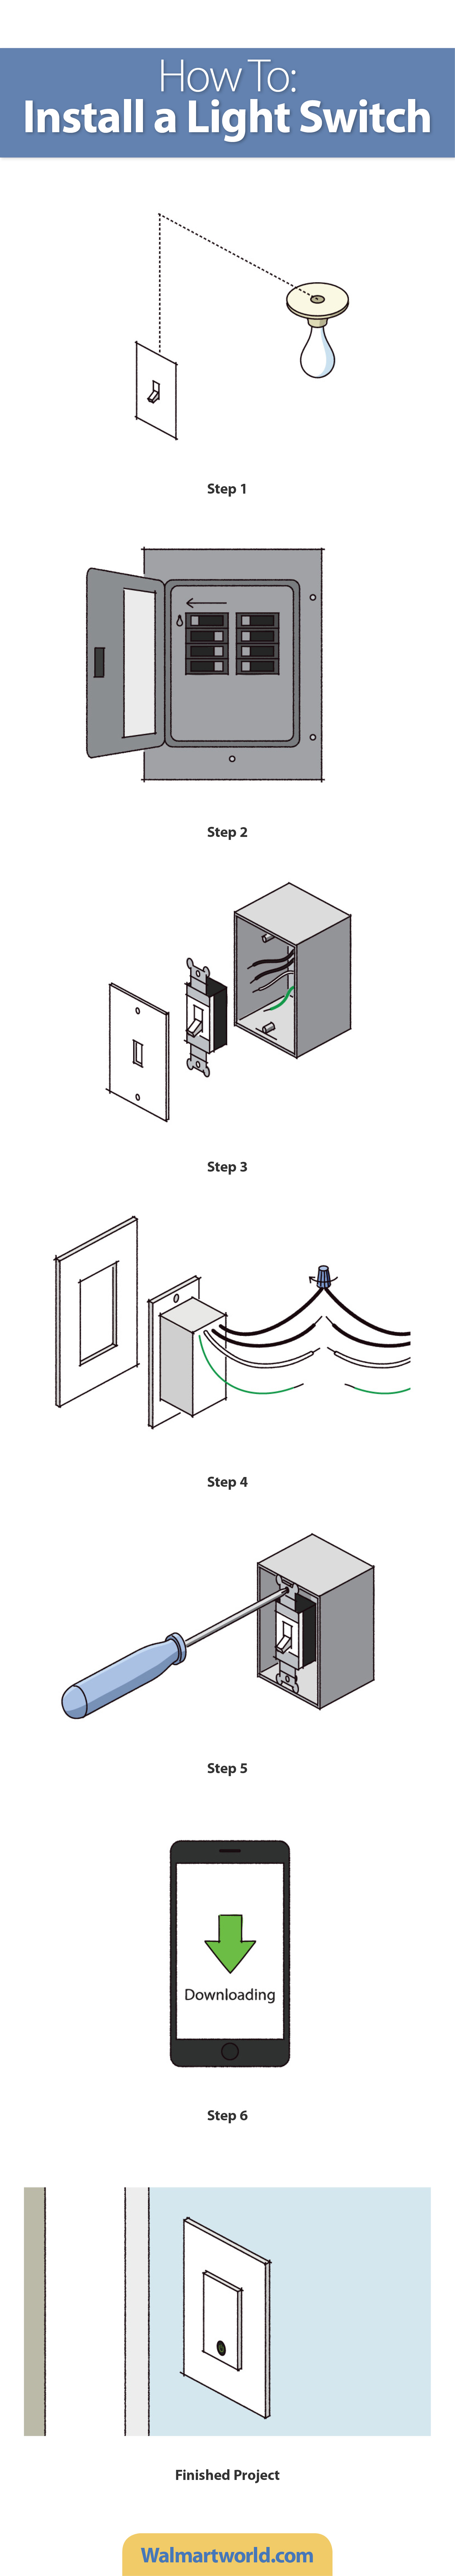 Install a wifi light switch and control your lights with your